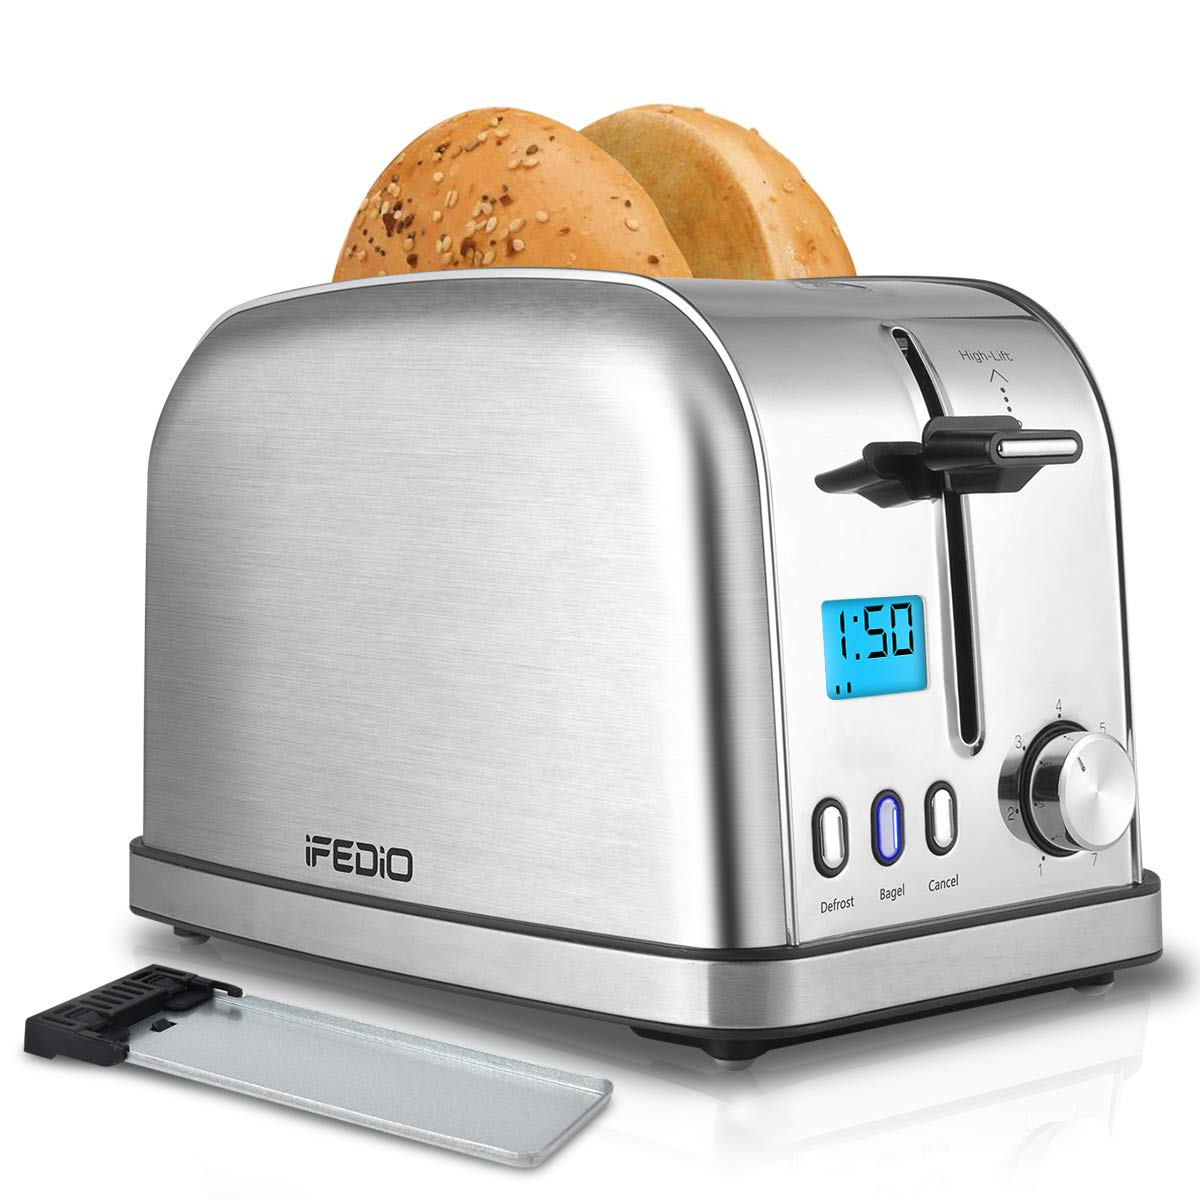 Toaster 2 Slice Toasters Best Rated Prime Toaster LCD Timer Display Compact Stainless Steel Toaster with 7 Bread Shade Settings, Bagel/Defrost/Cancel Function, Extra Wide Slots, Removable Crumb Tray (900W, Silver) by iFedio